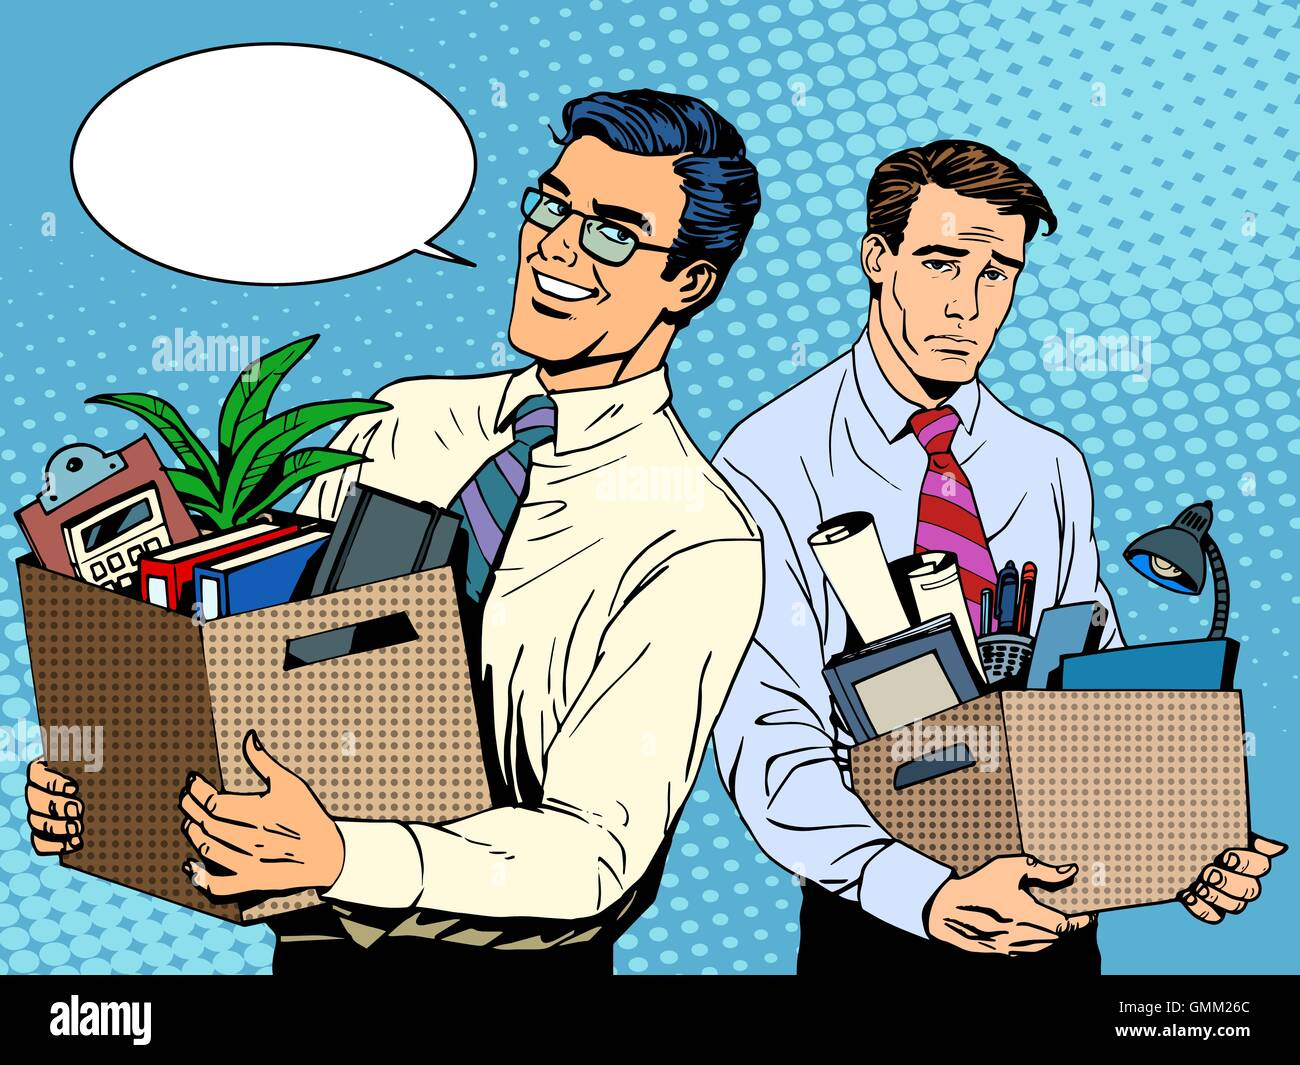 job dismissal and employment - Stock Vector